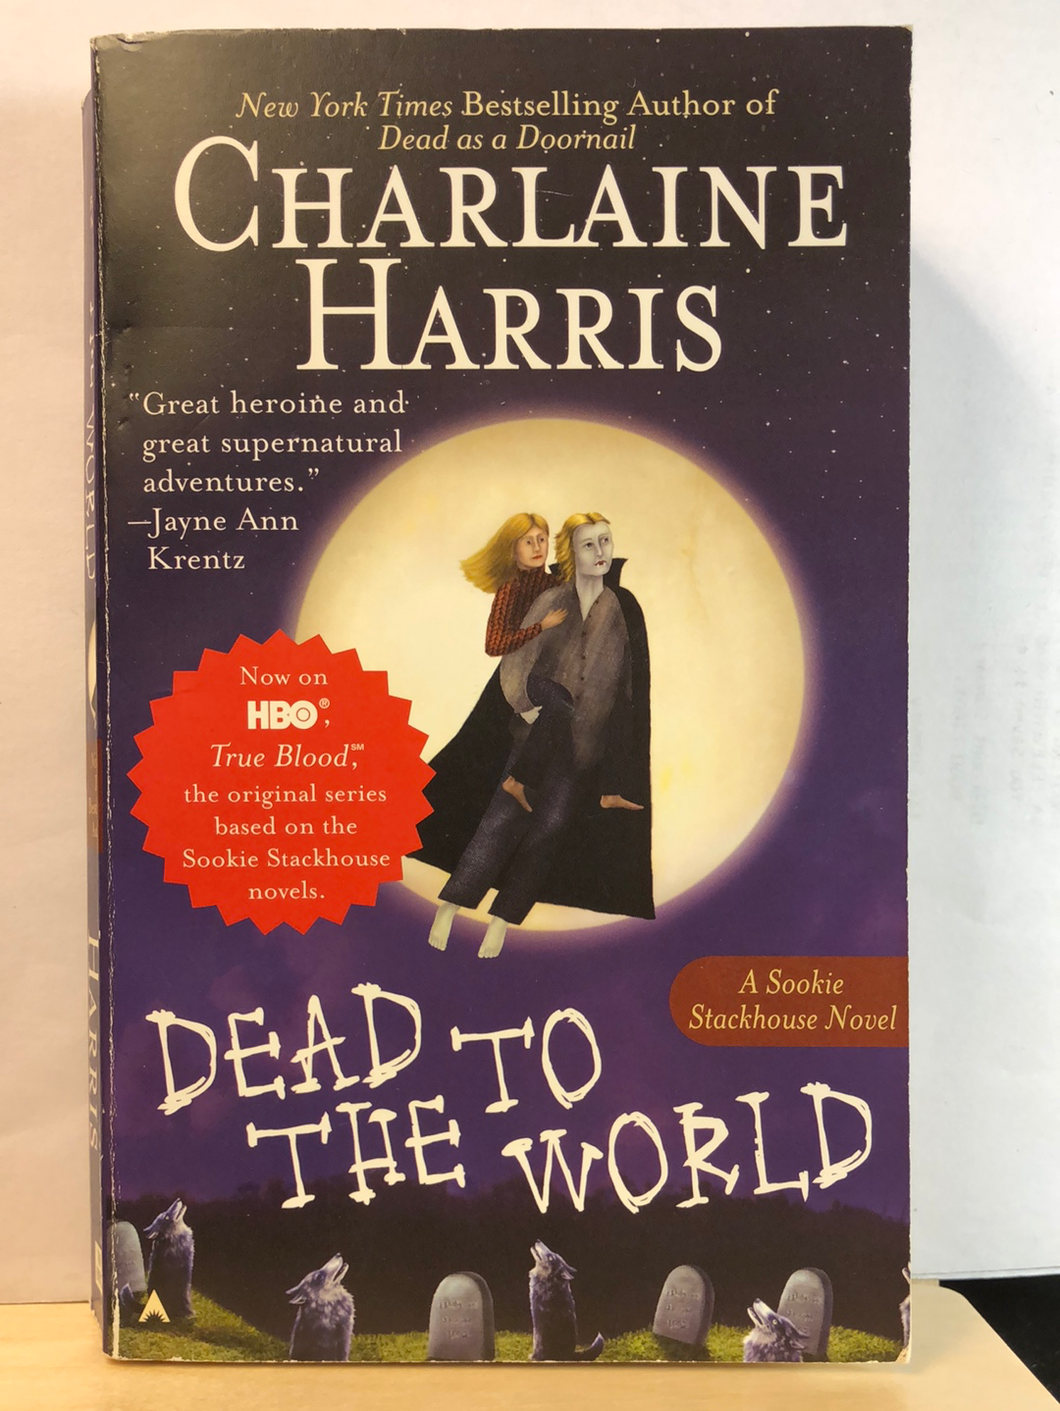 Dead to the World    by Charlaine Harris   (Sookie Stackhouse #4)     used paperback